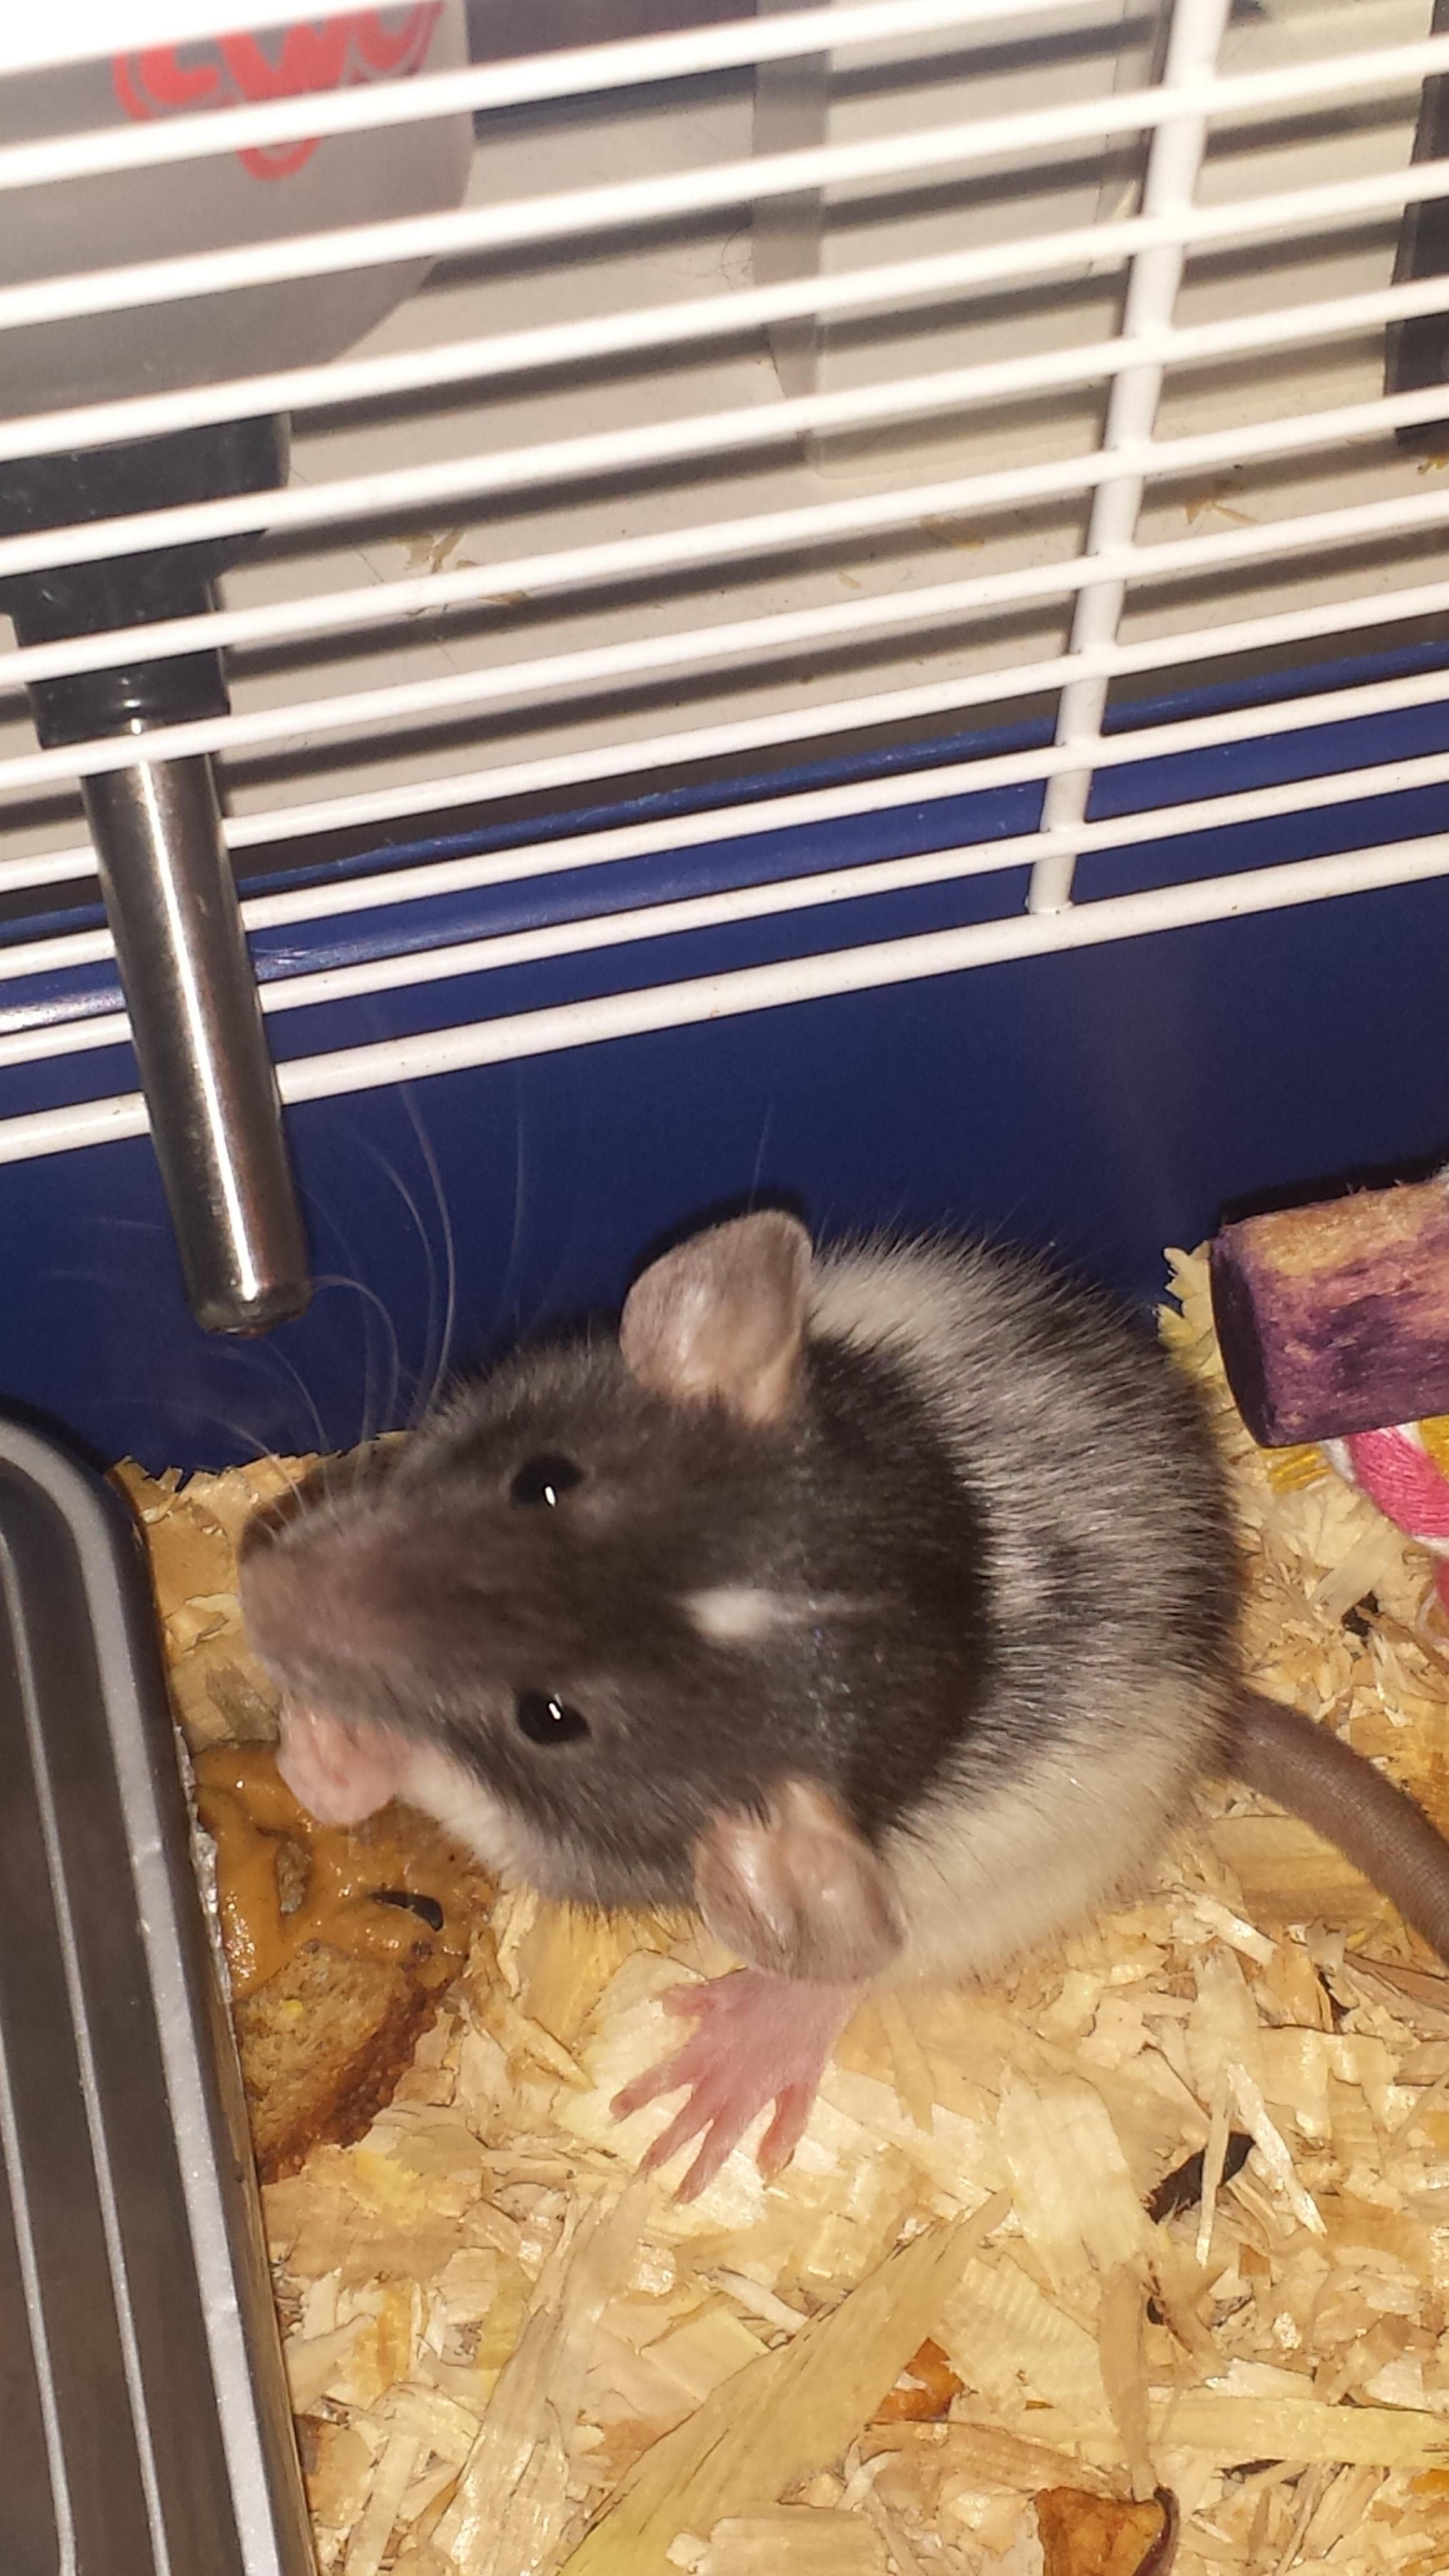 Rip Ruby Tv Won T Be The Same Without You Watching From Under My Shirt Collar Aww Cute Rat Cuterats Ratsofpintere Cute Rats Small Pets Animal Companions